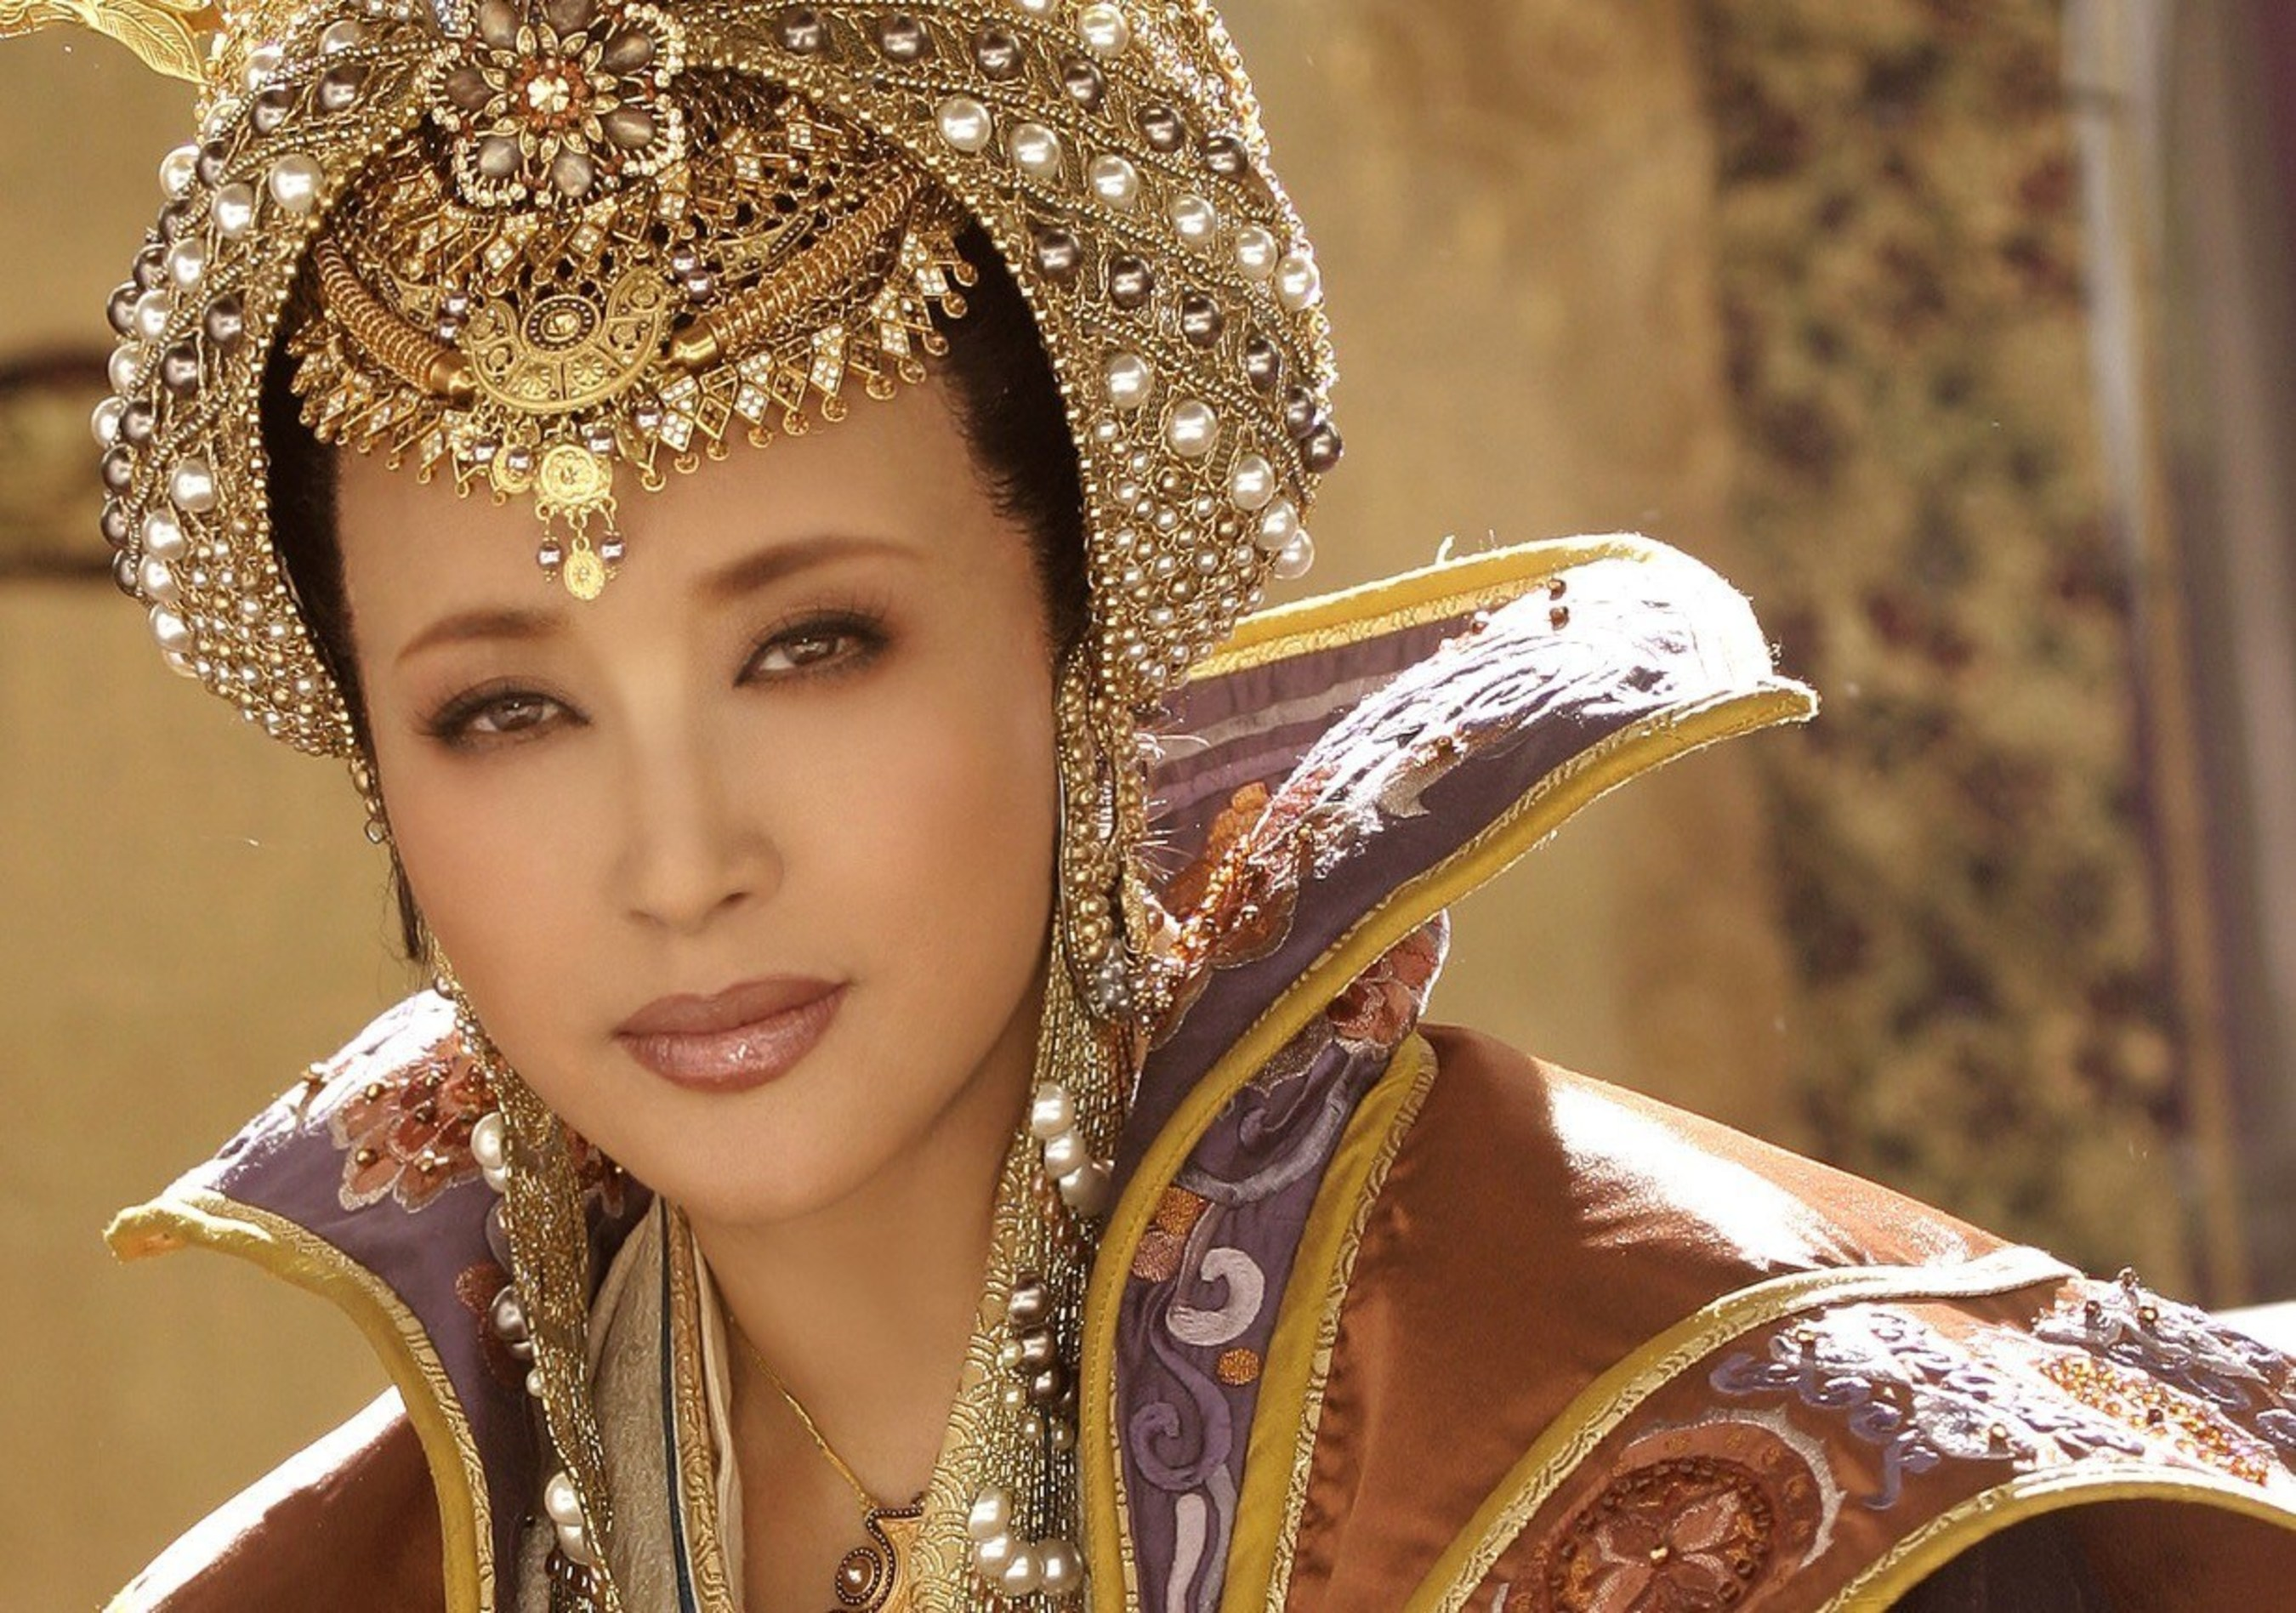 """Actress Xiaoqing Liu set to star in, """"Empress,"""" a new series by Executive Producer of Game of Thrones."""